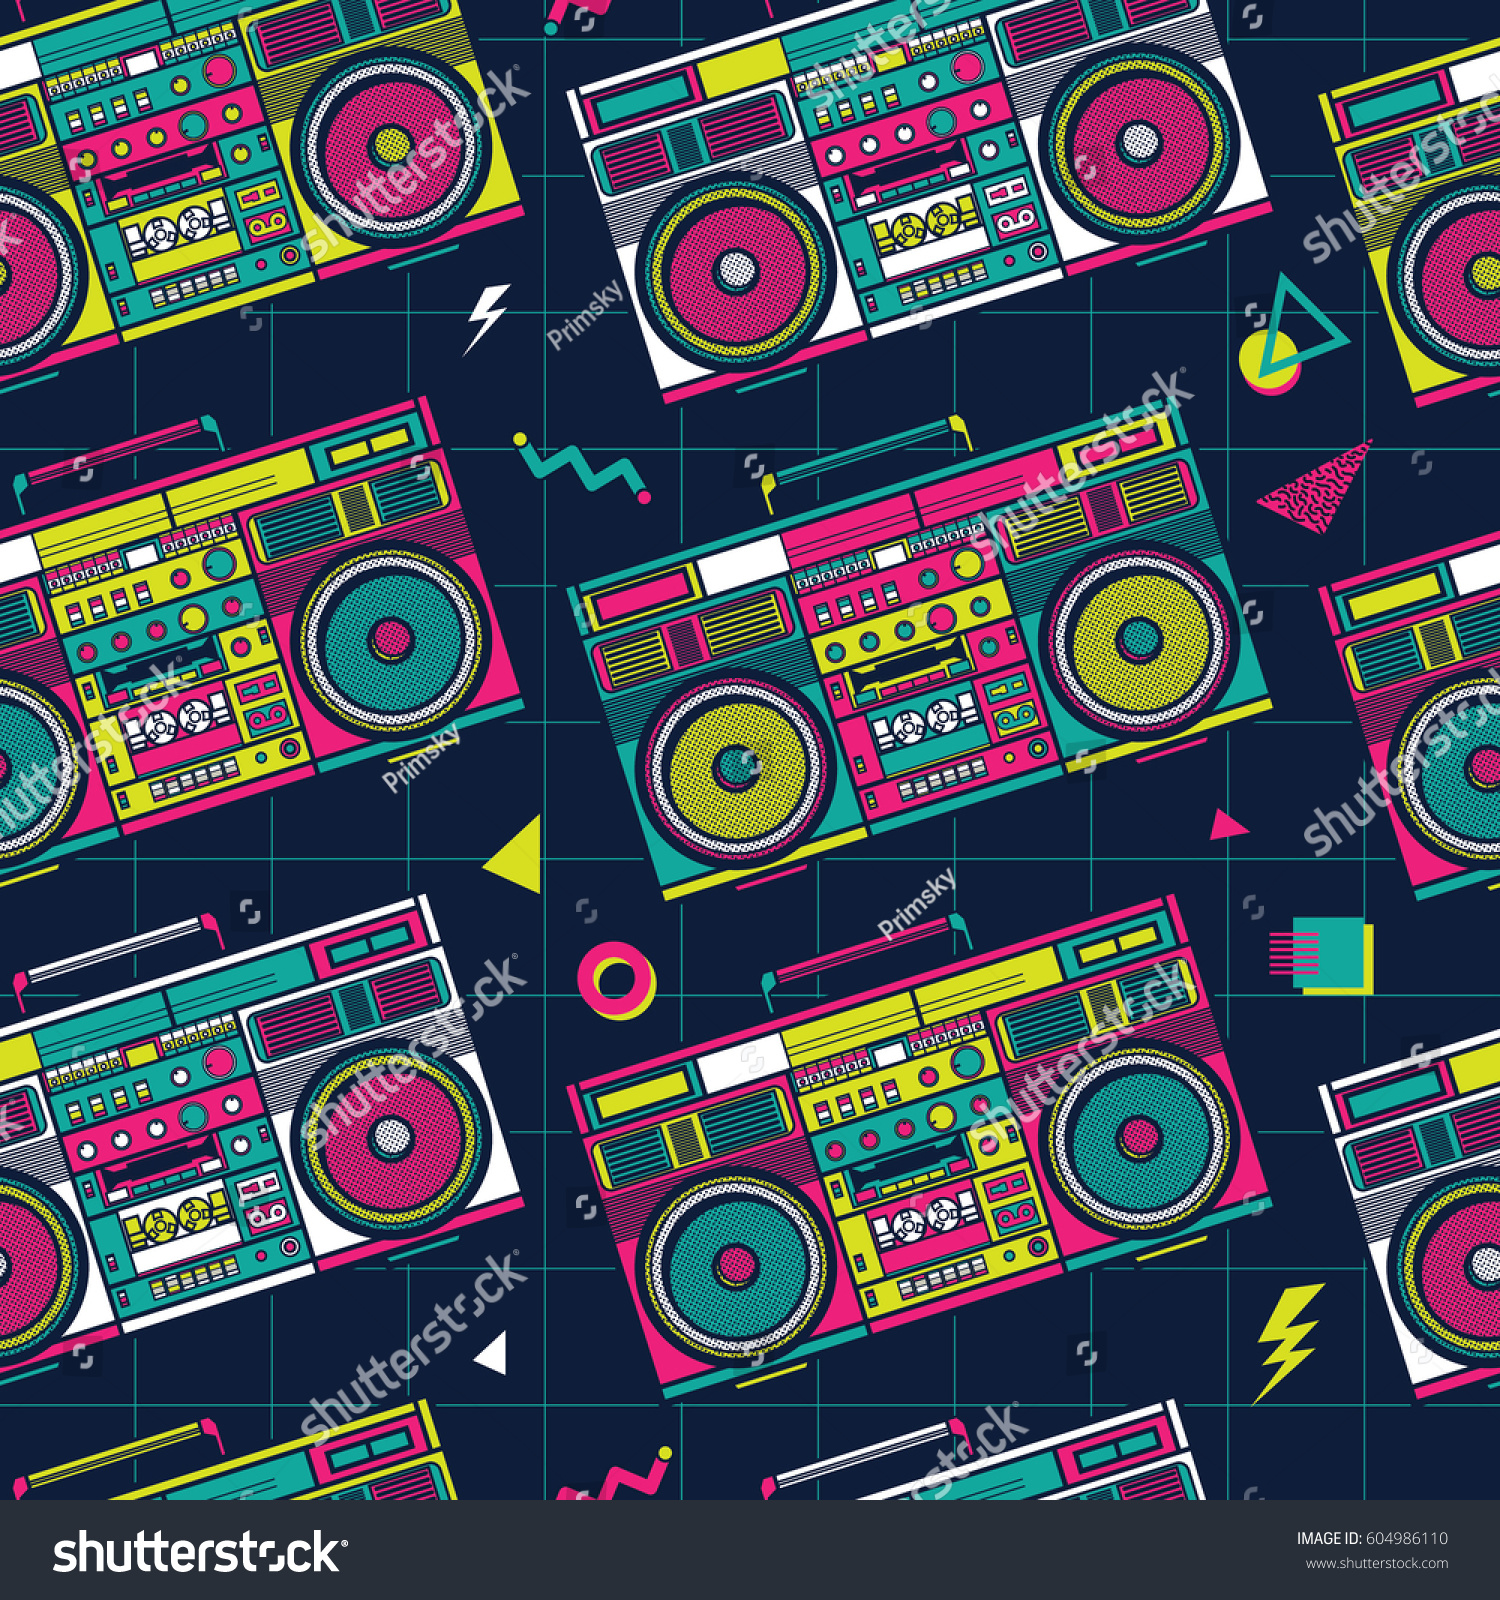 Retro Pop Eighties Boombox Radio Seamless Pattern 80s Background Wallpaper